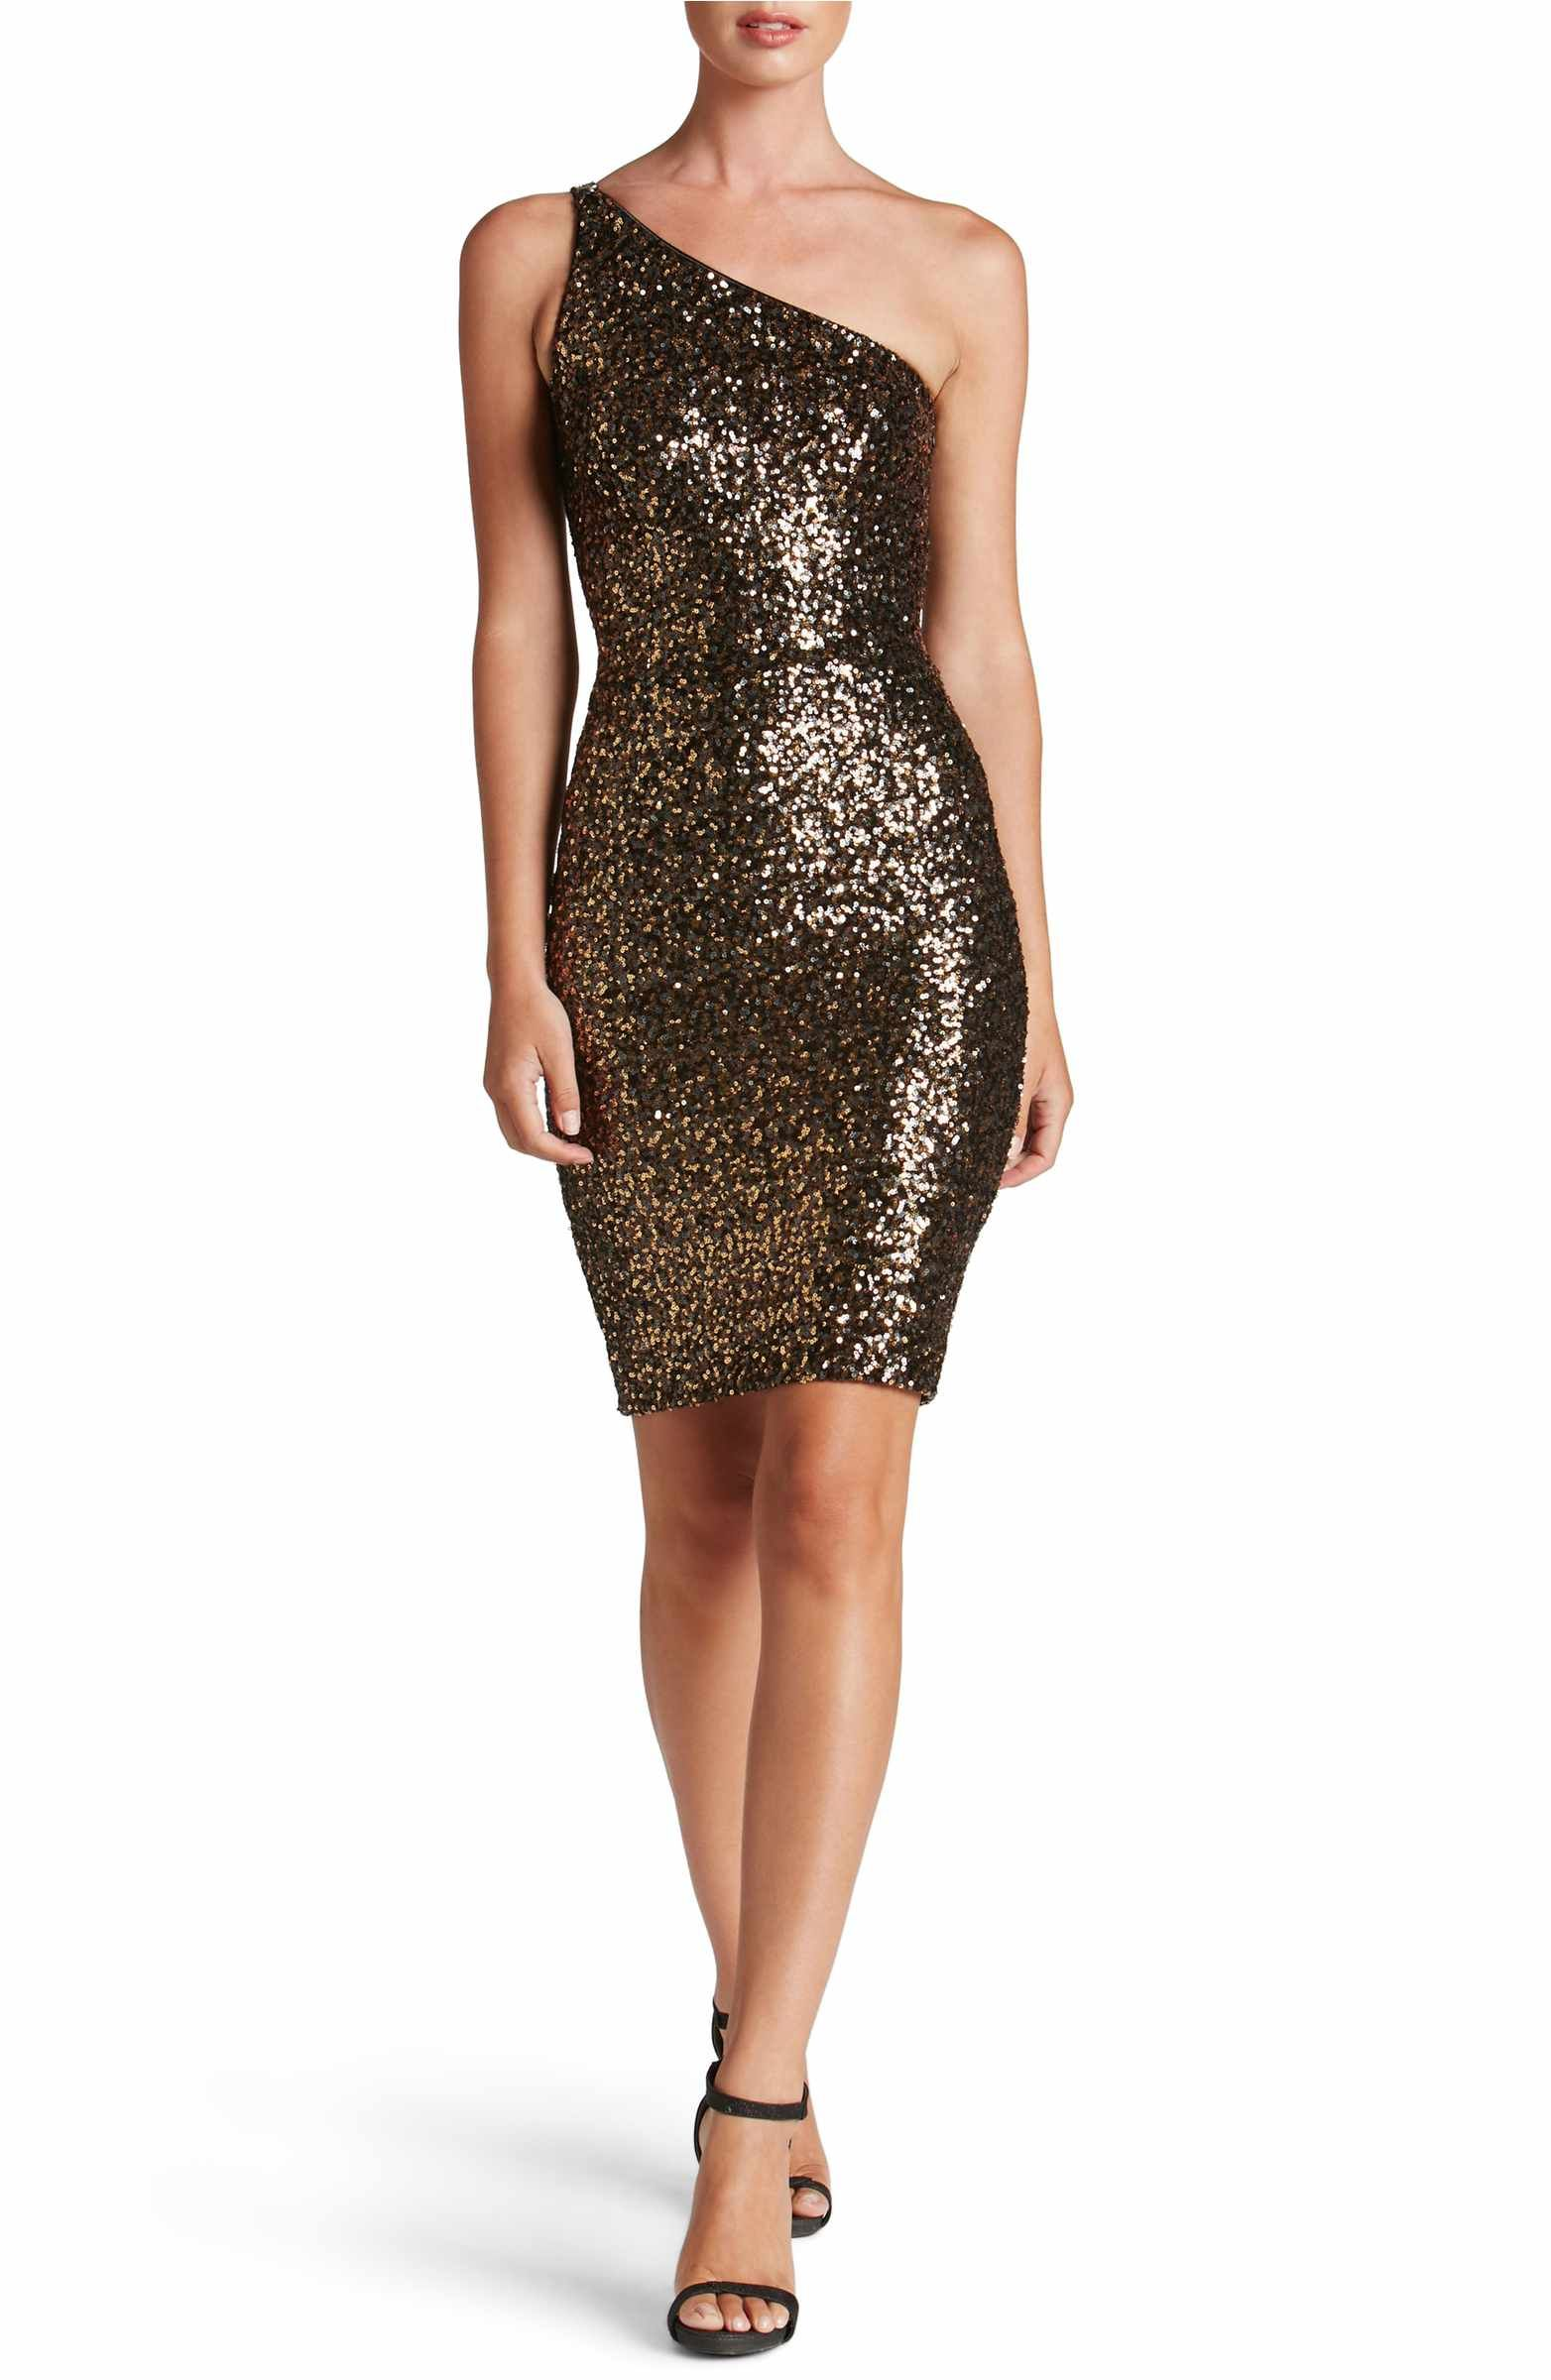 05675887 Main Image - Dress the Population Cher One-Shoulder Sequin Body-Con Dress